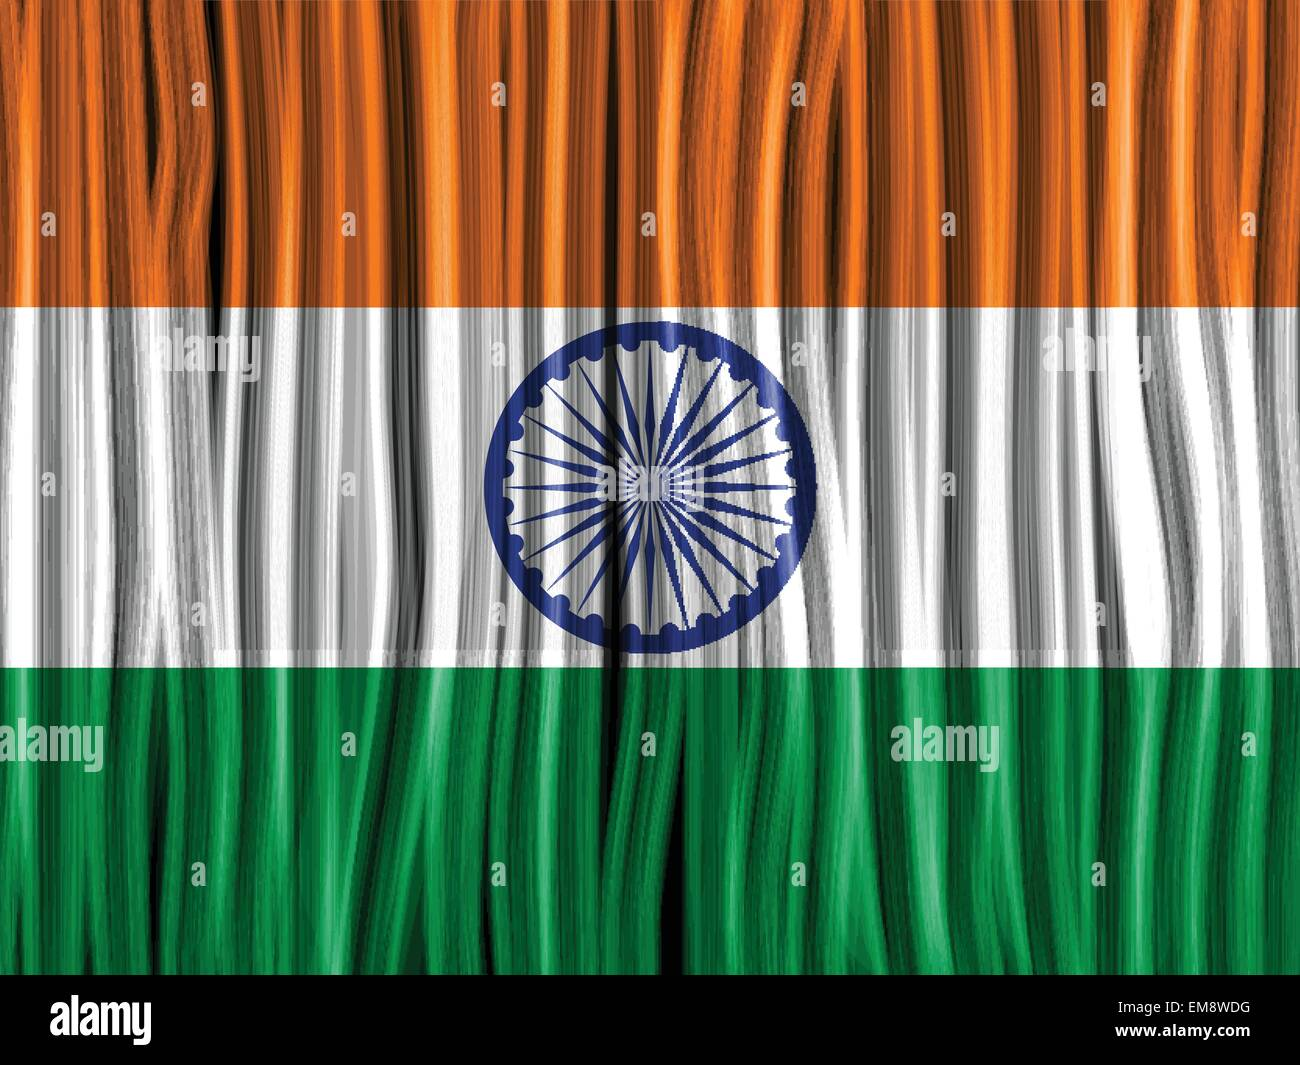 Clothe India Flag Hd: Indian Pattern India Fabric Stock Photos & Indian Pattern